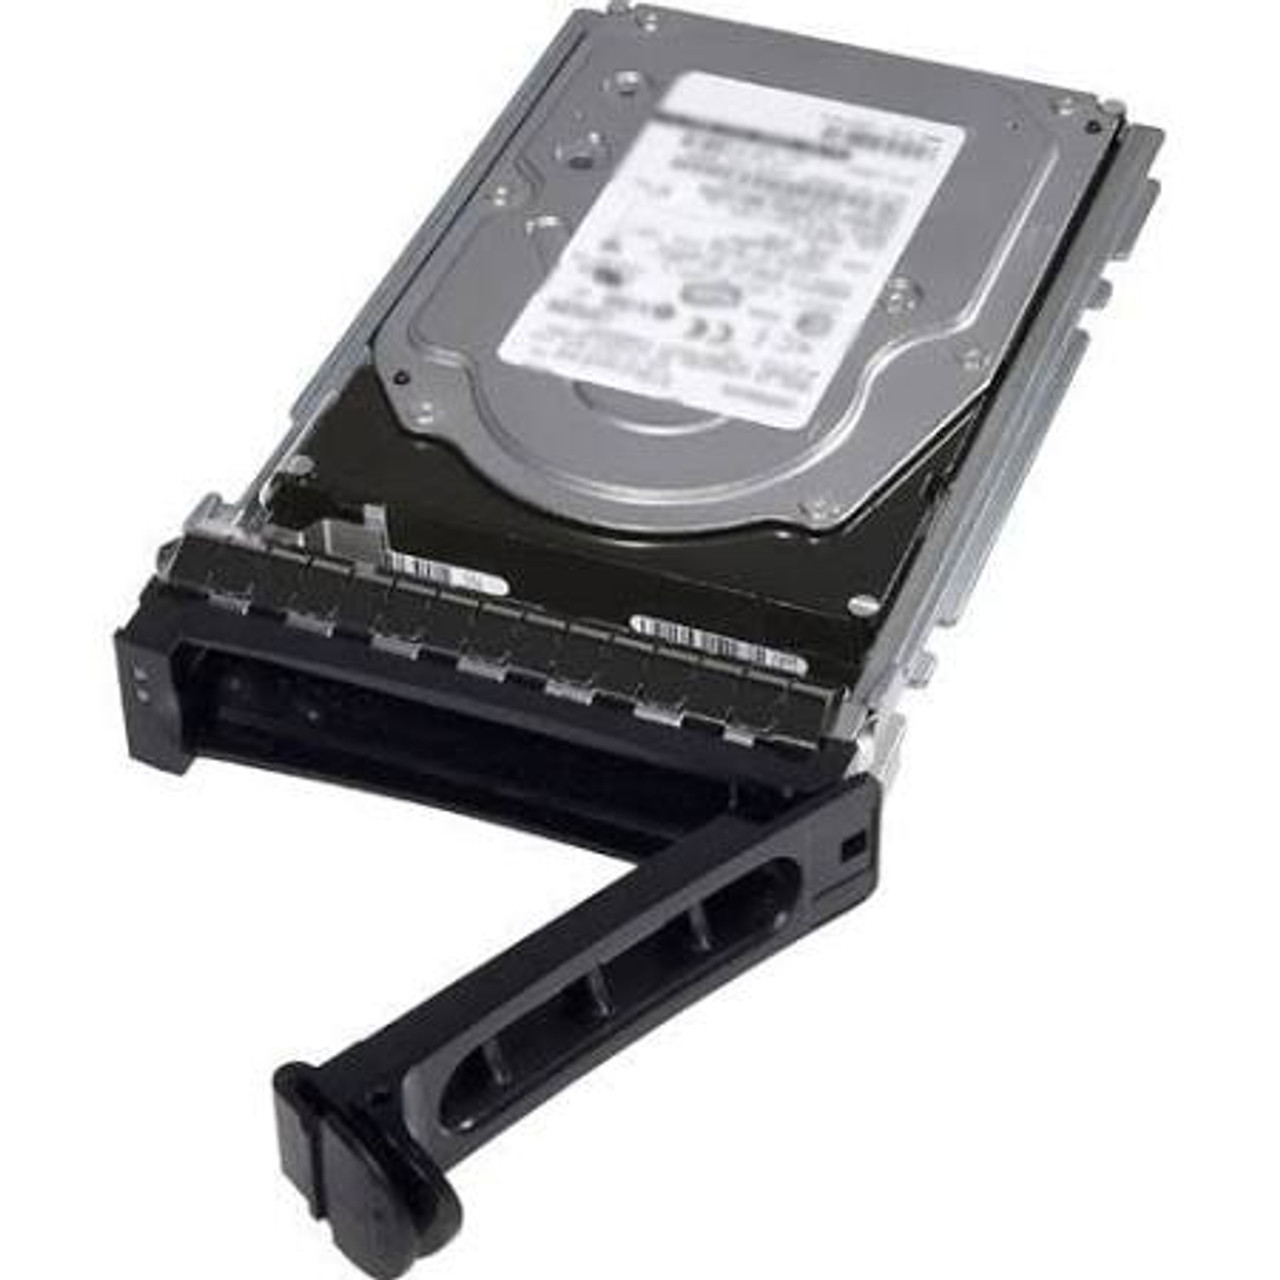 Black 804625-B21 Hot-Swap Serial/_Interface 2.5 HP Office Mixed Use-2 Solid State Drive